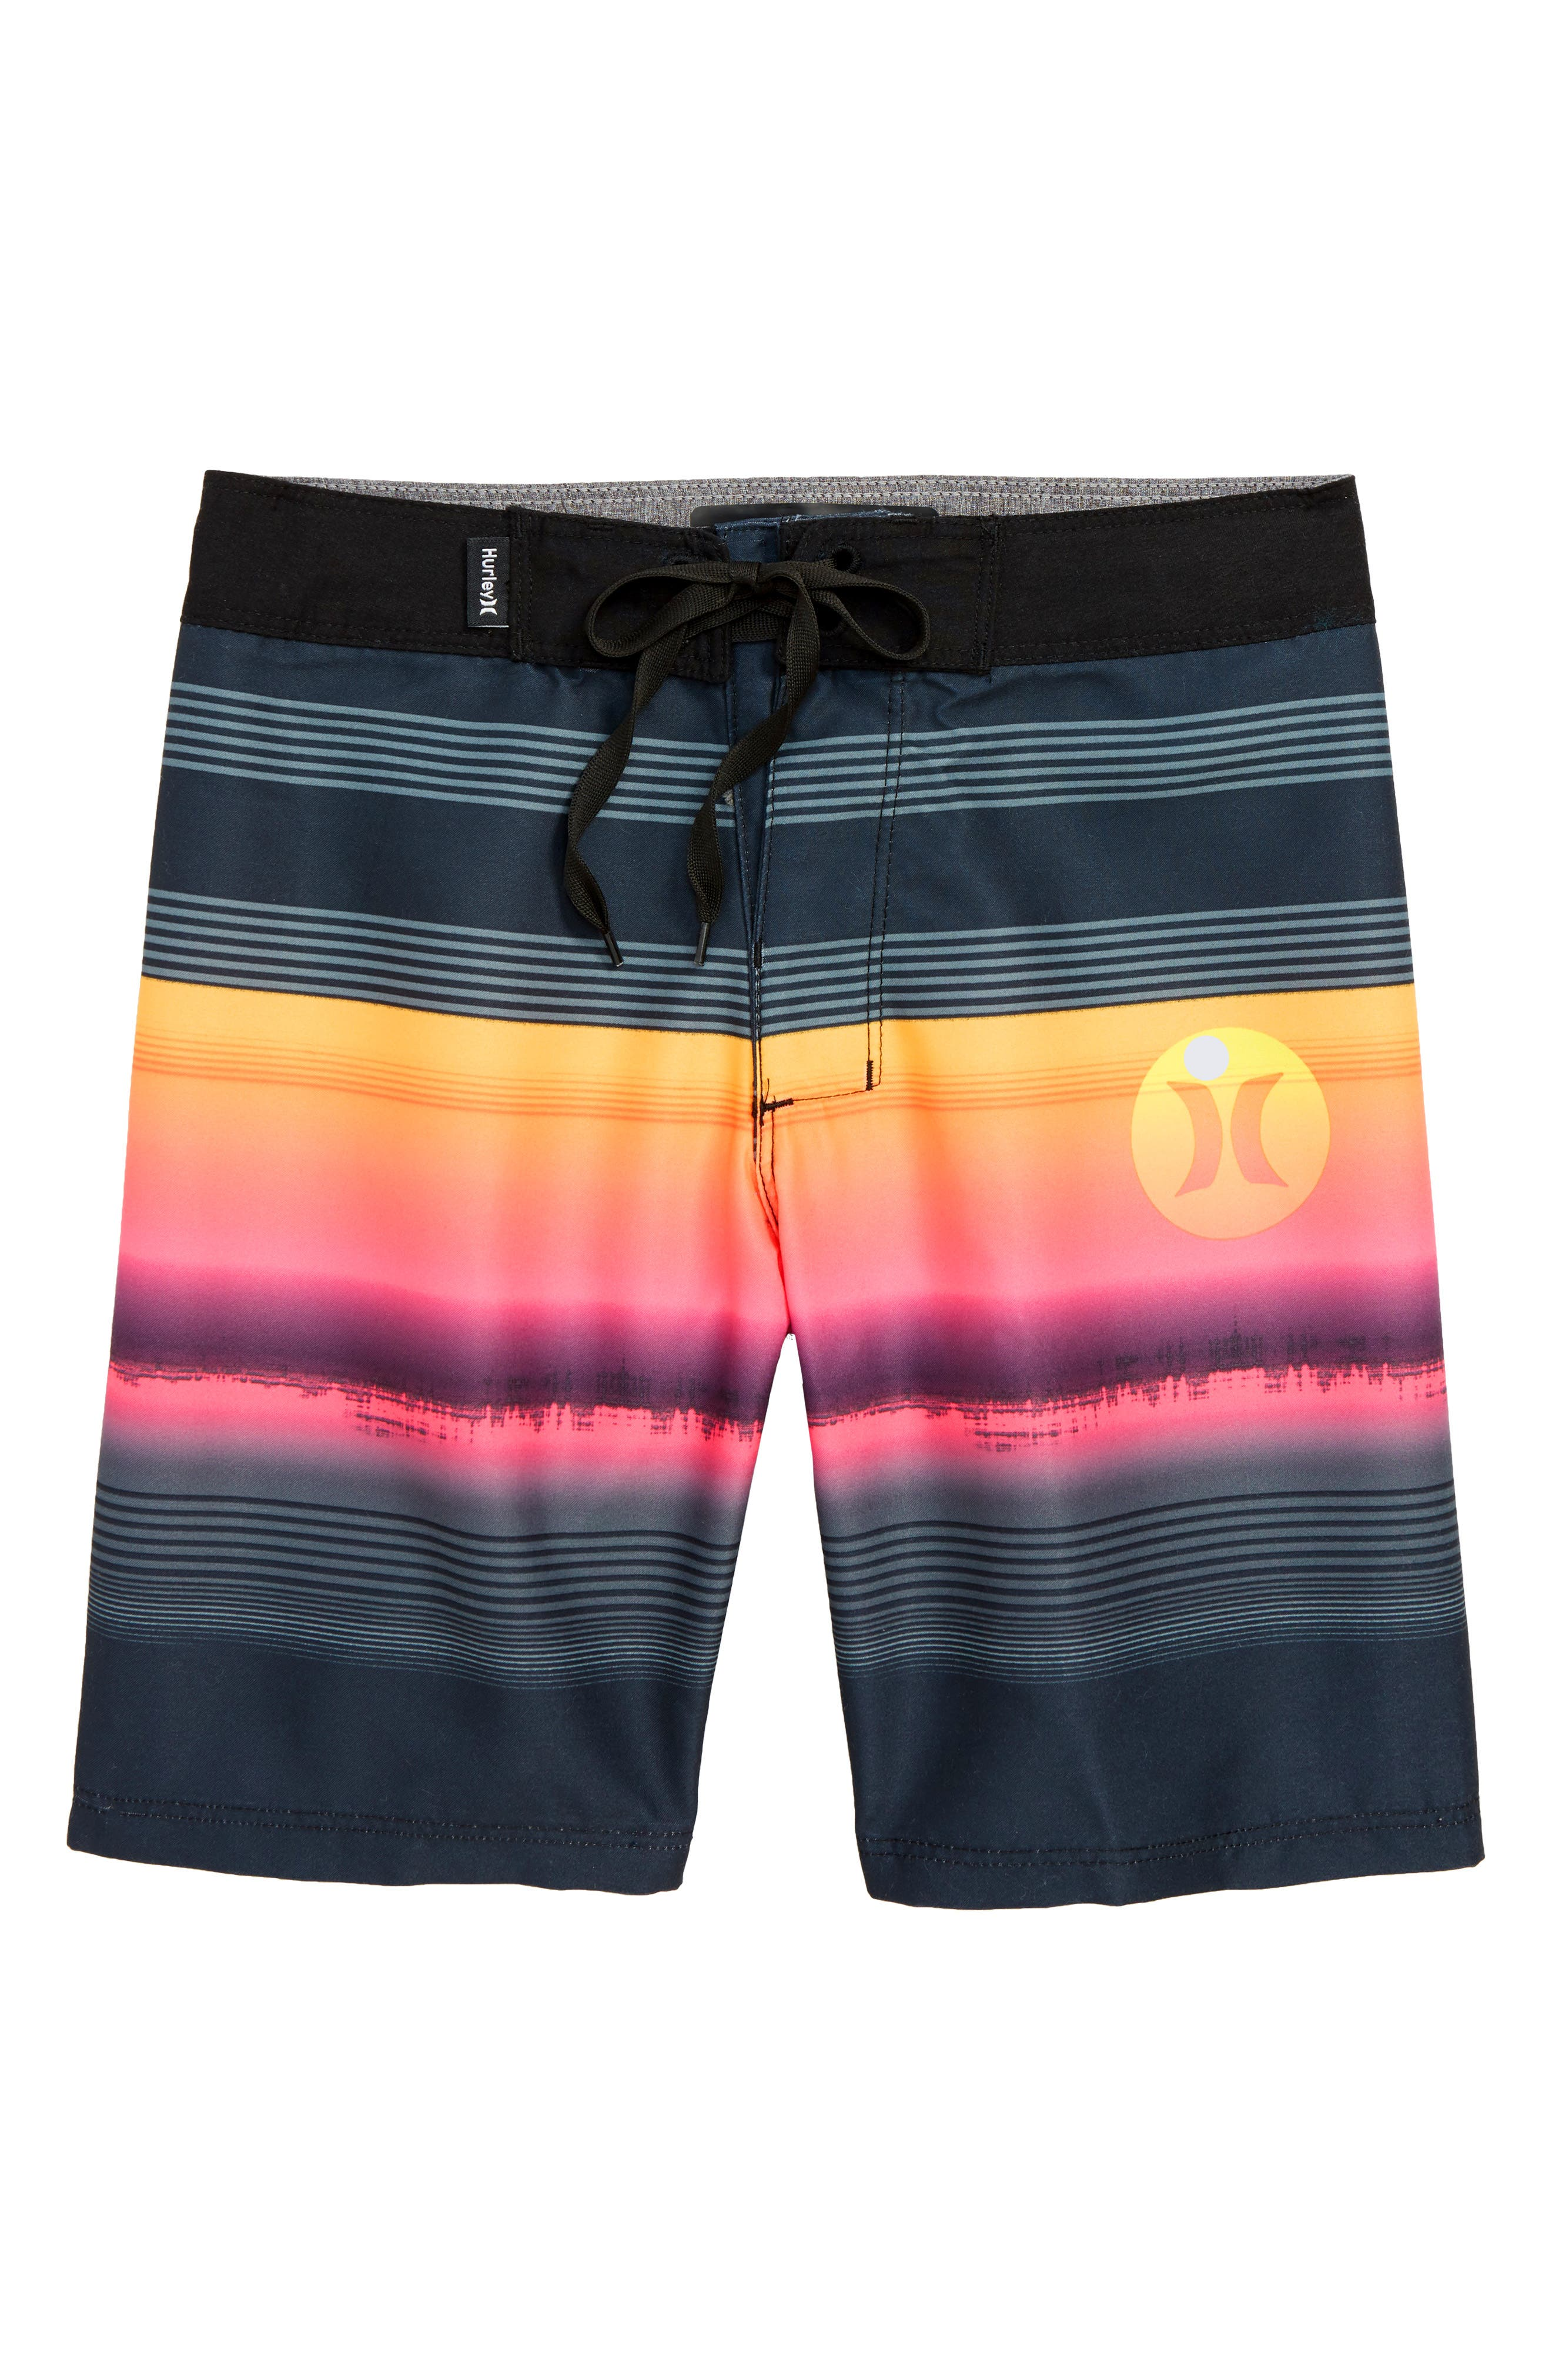 HURLEY,                             Gavitos Board Shorts,                             Main thumbnail 1, color,                             001